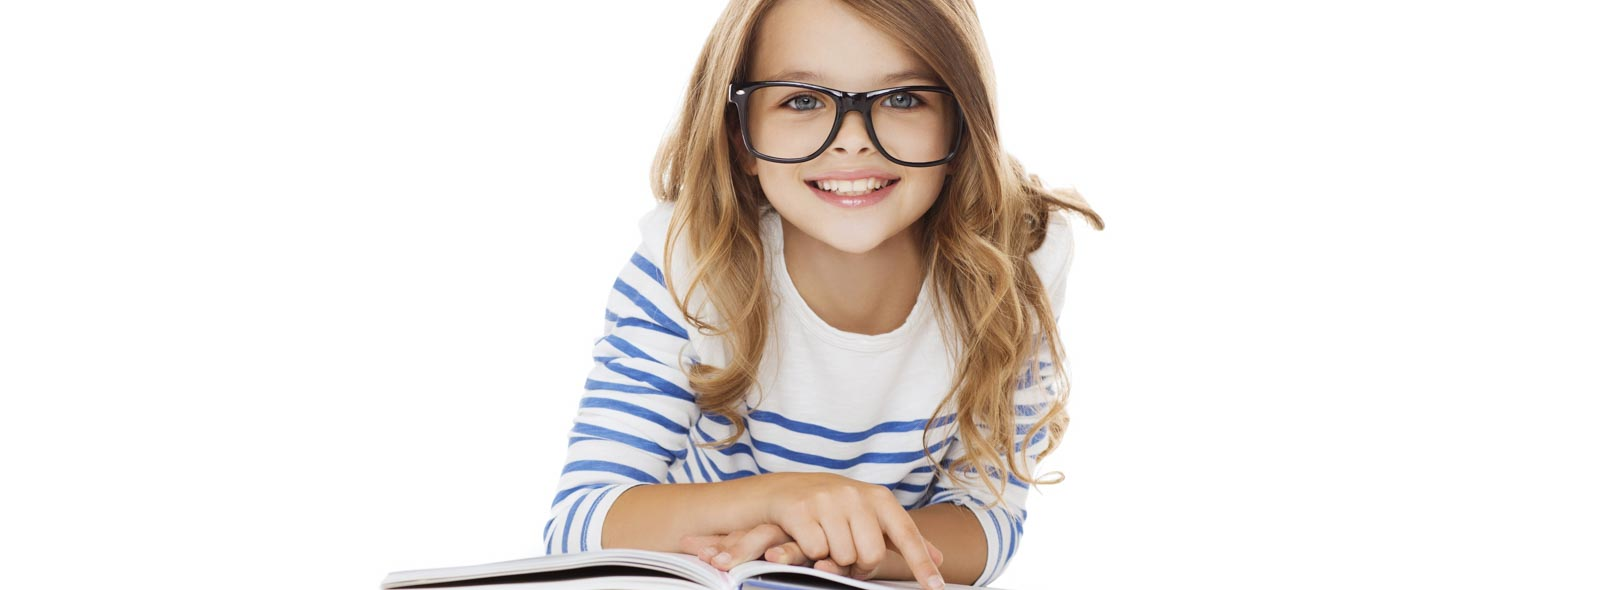 girl with glasses smiling lying on book